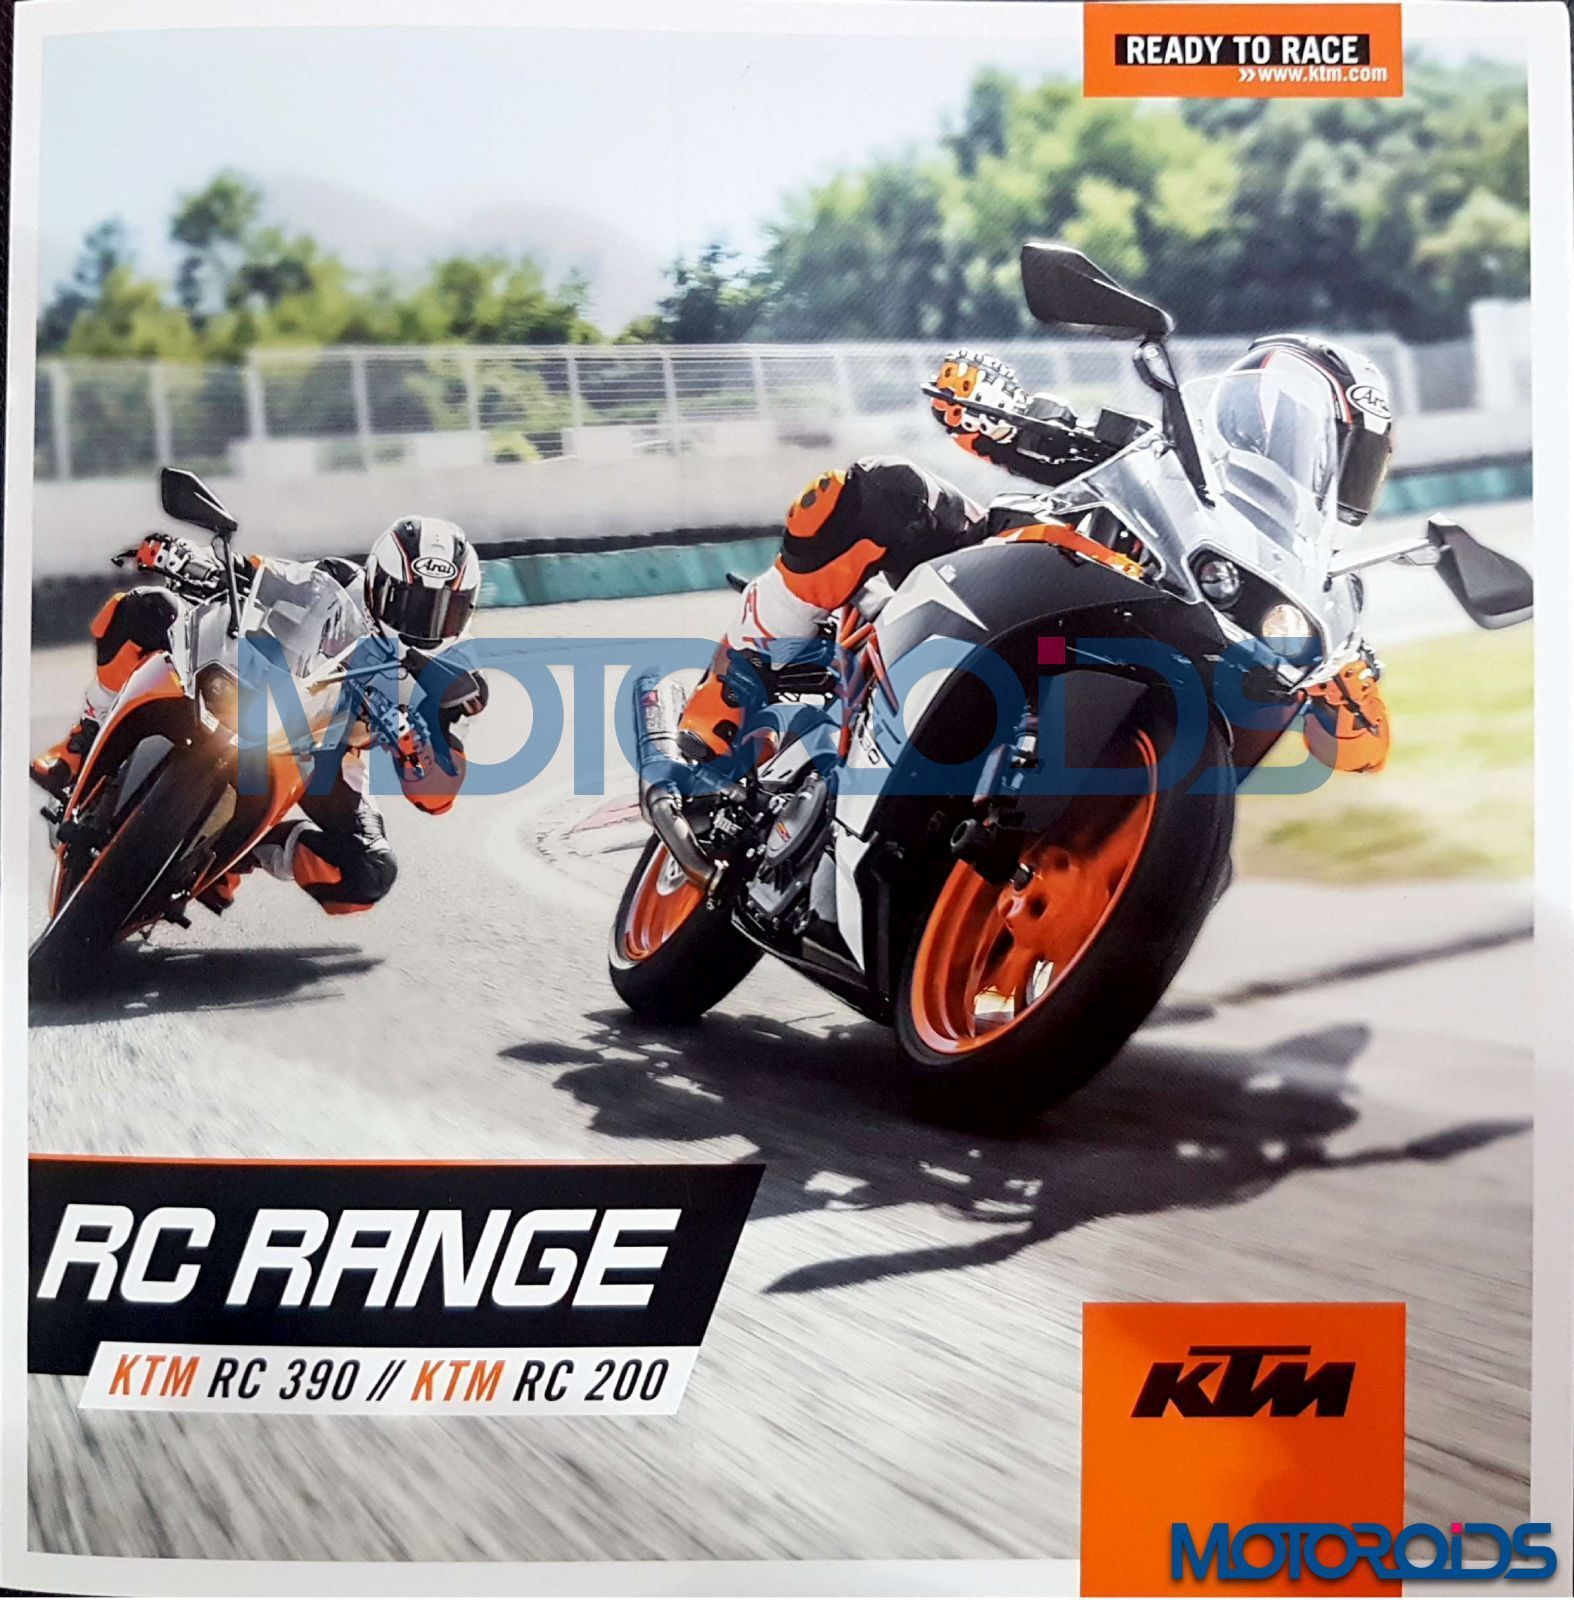 While the 2017 ktm rc 200 just gets a new paint job the rc 390